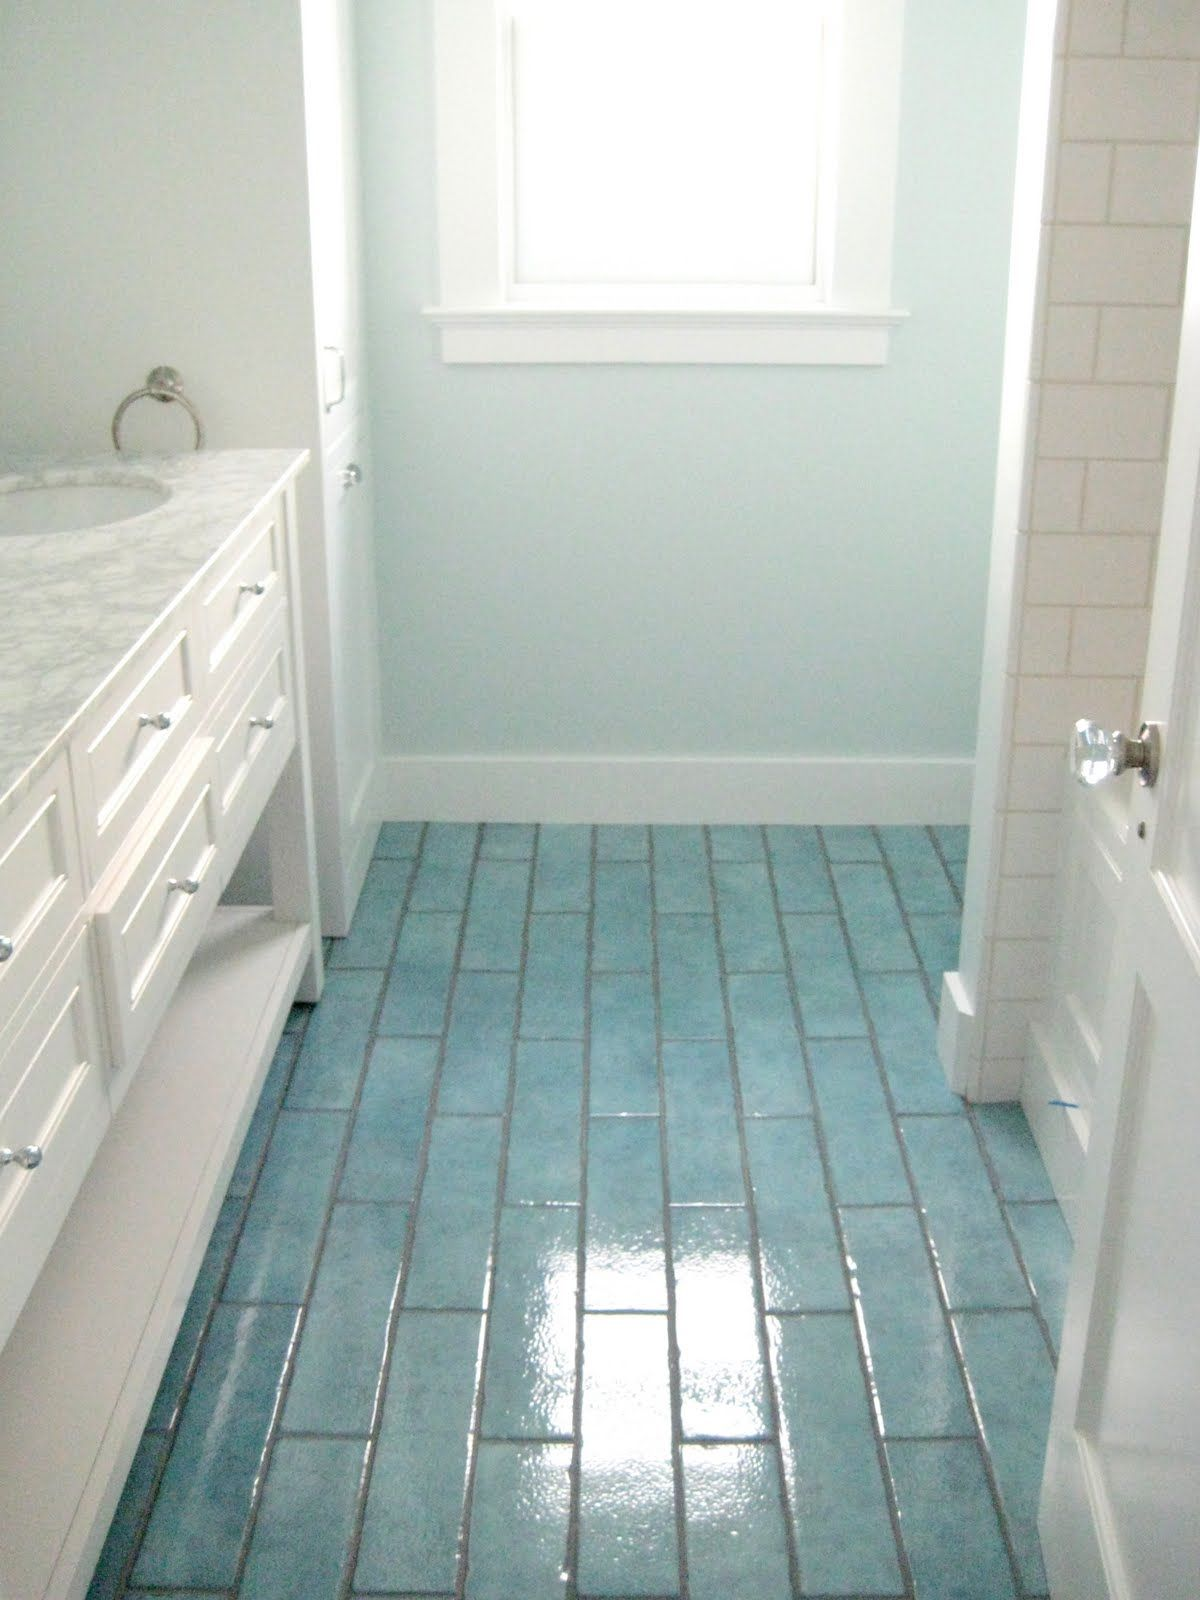 Blue+floor+tiles+for+bathroom.jpg] | Home | Pinterest | Paper cranes ...